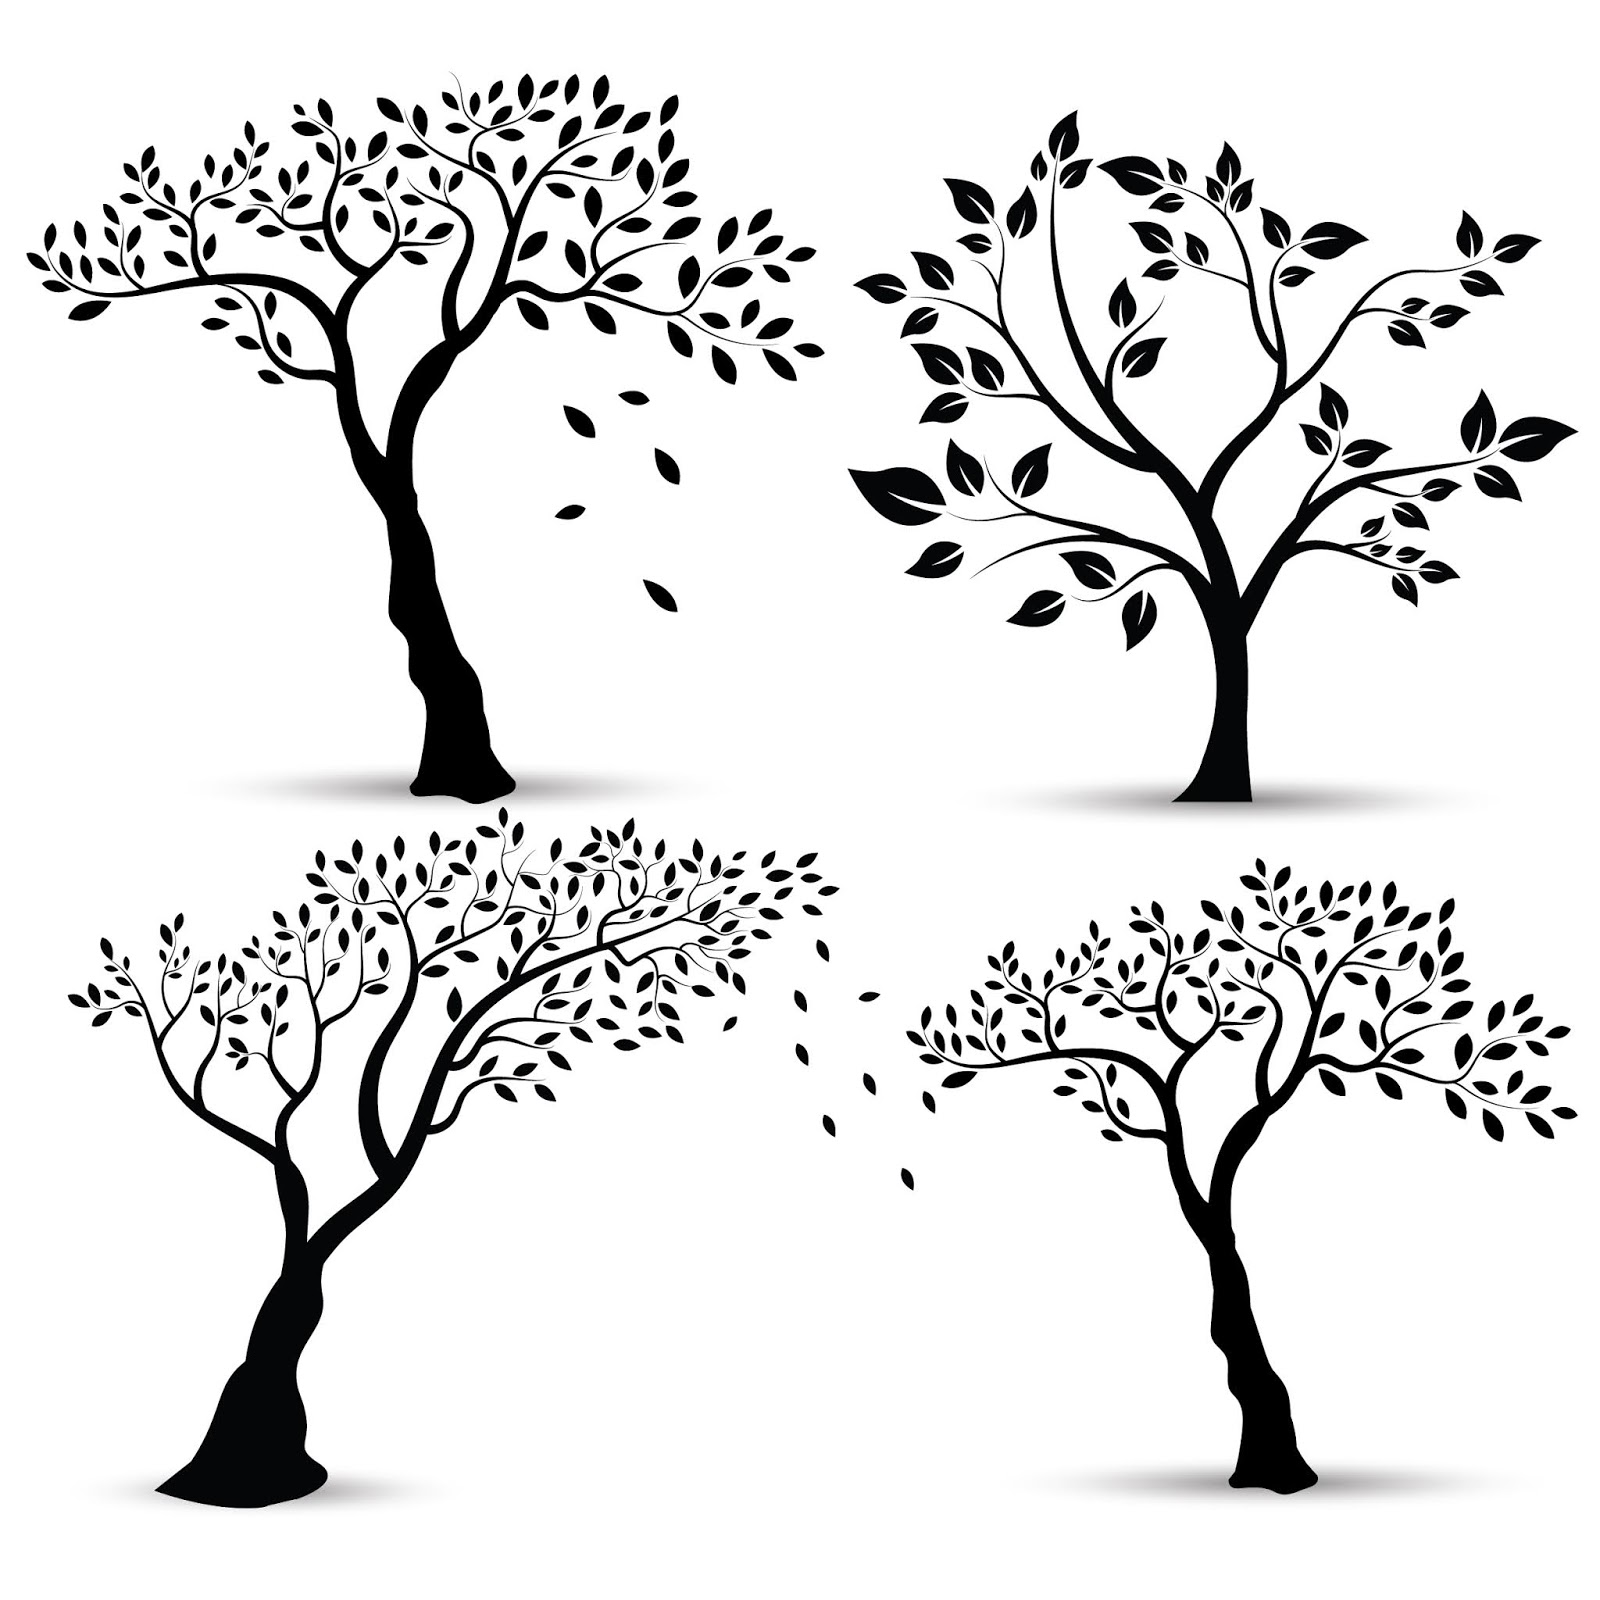 Vector Illustration Set Silhouettes Trees Free Download Vector CDR, AI, EPS and PNG Formats